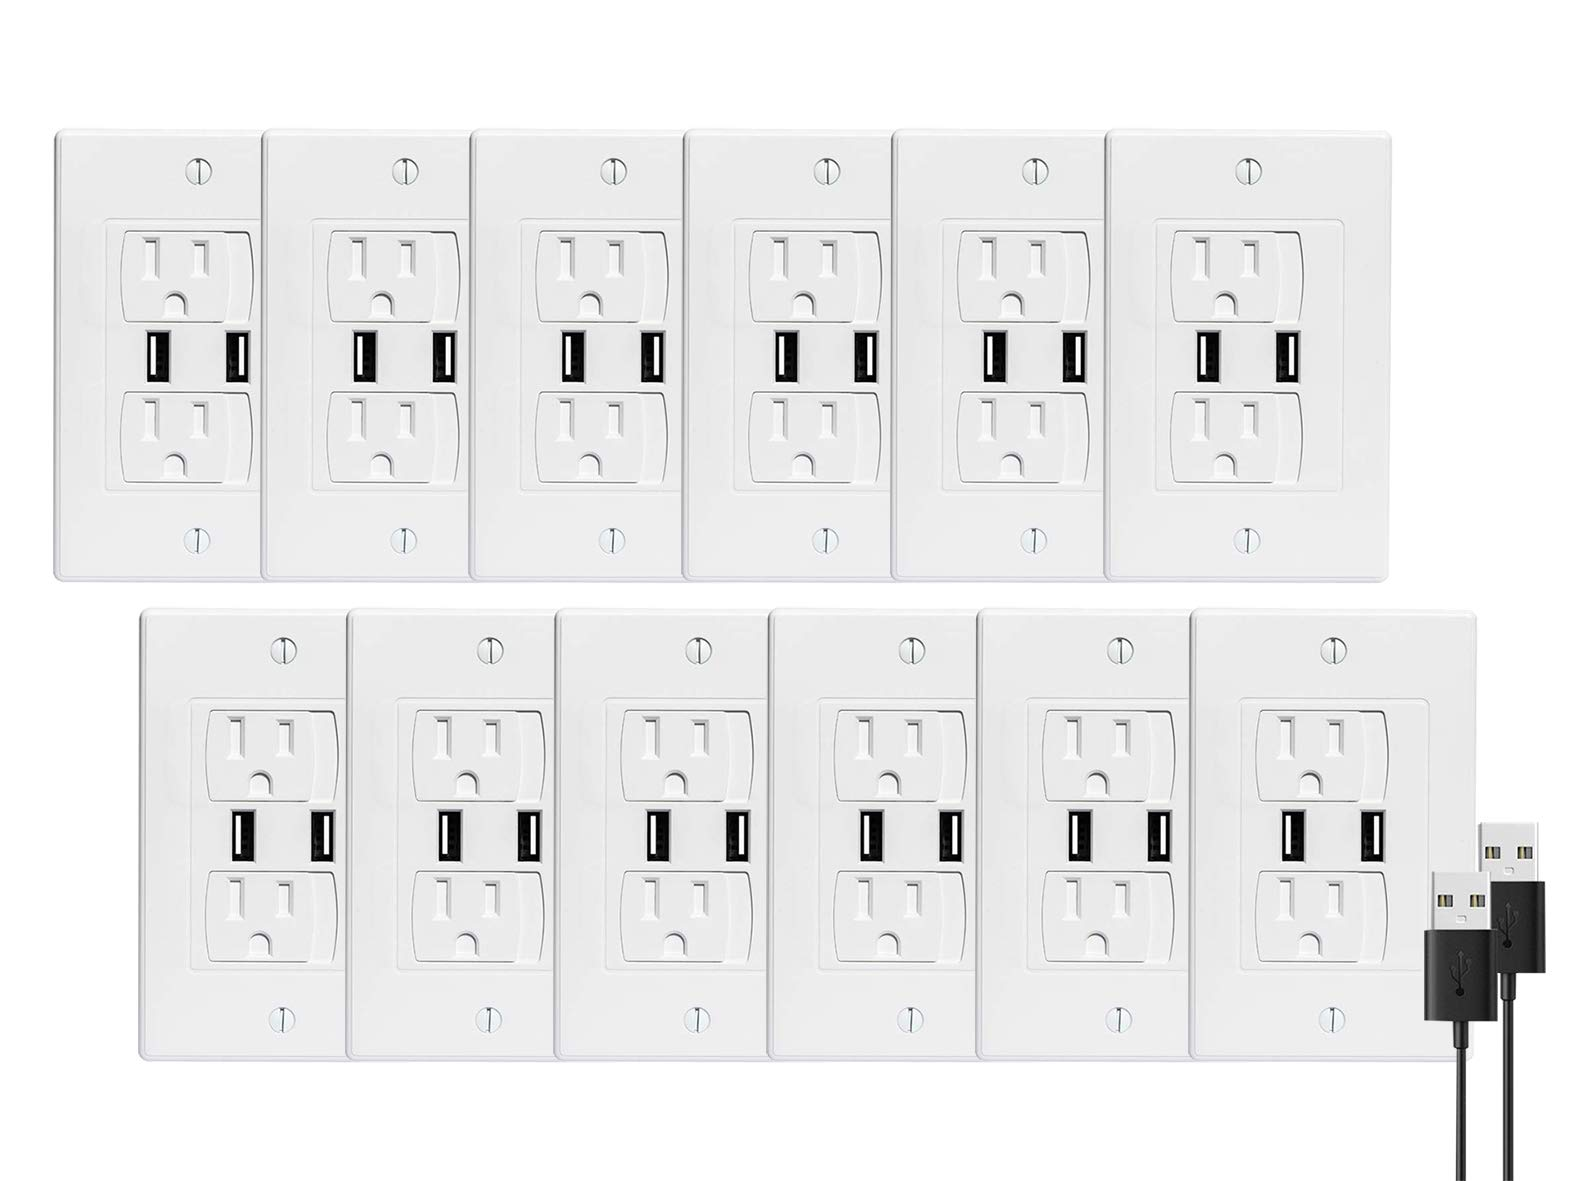 BUENAVO Universal Electrical Outlet Covers with USB Port, Baby Safety Self-Closing Wall Socket Plugs Plate Alternate for Child Proofing, BPA Free (12 Pack) by BUENAVO